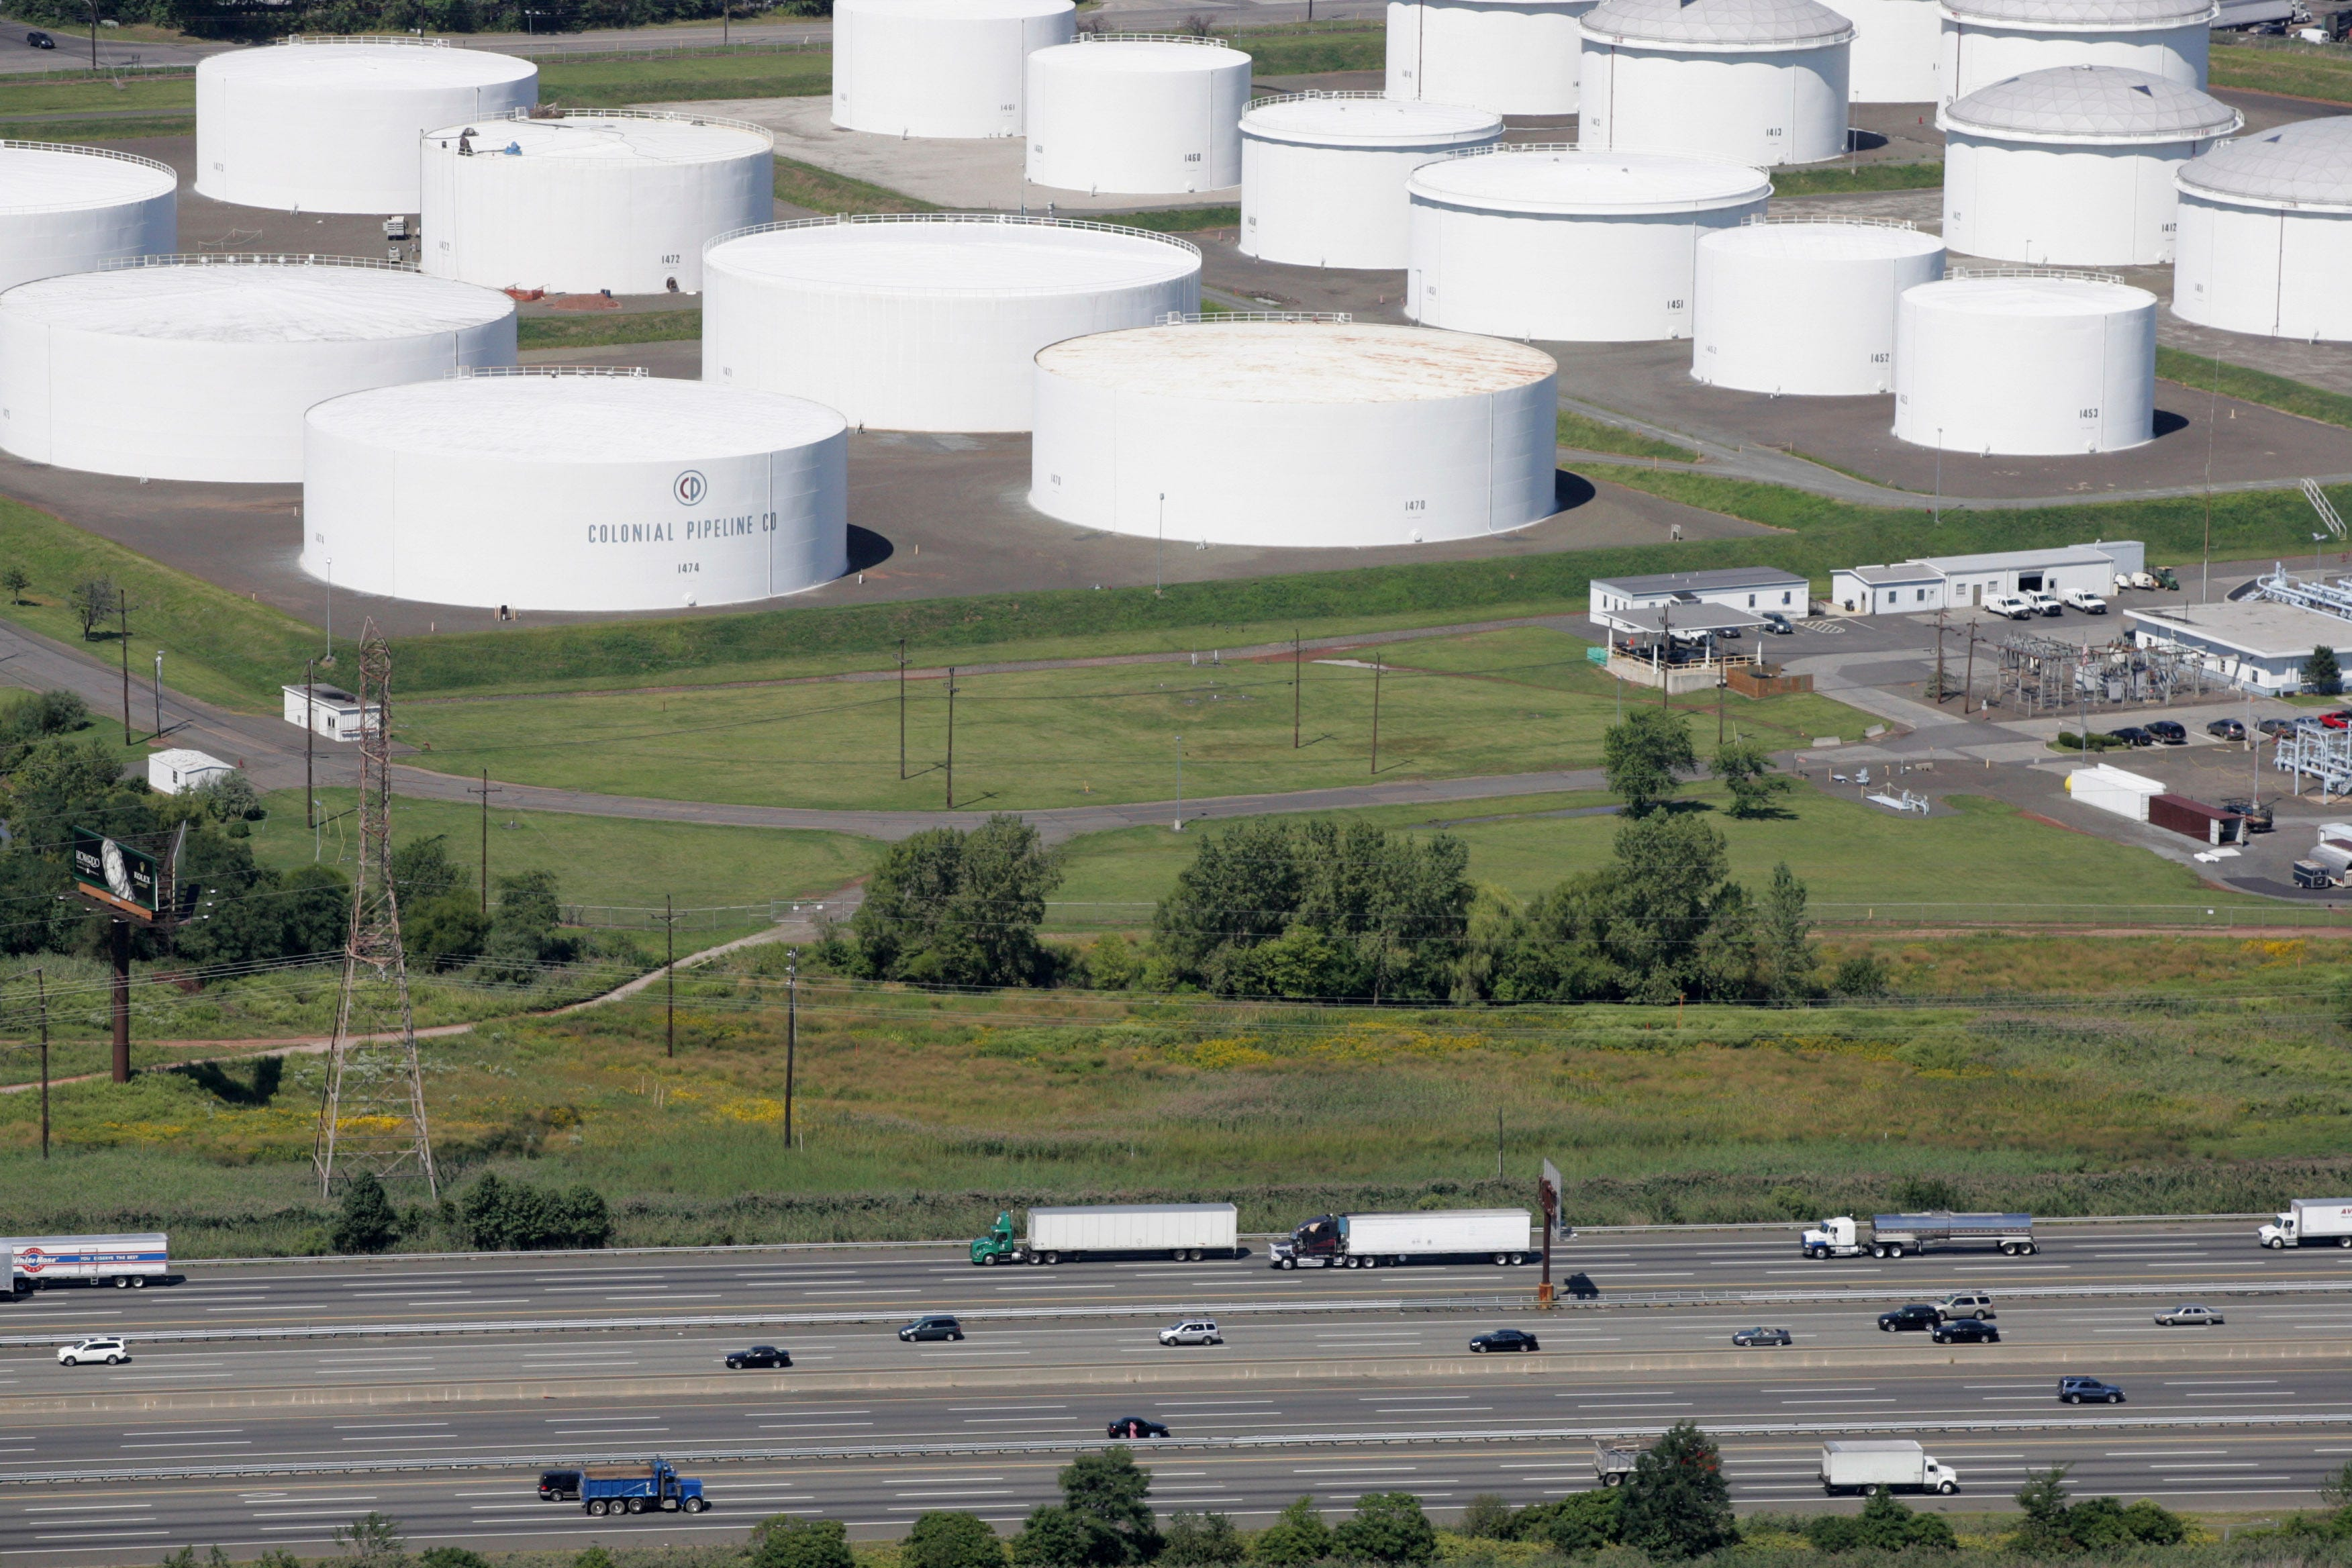 Colonial pipeline cyberattack could cause gasoline shortages in Southeast